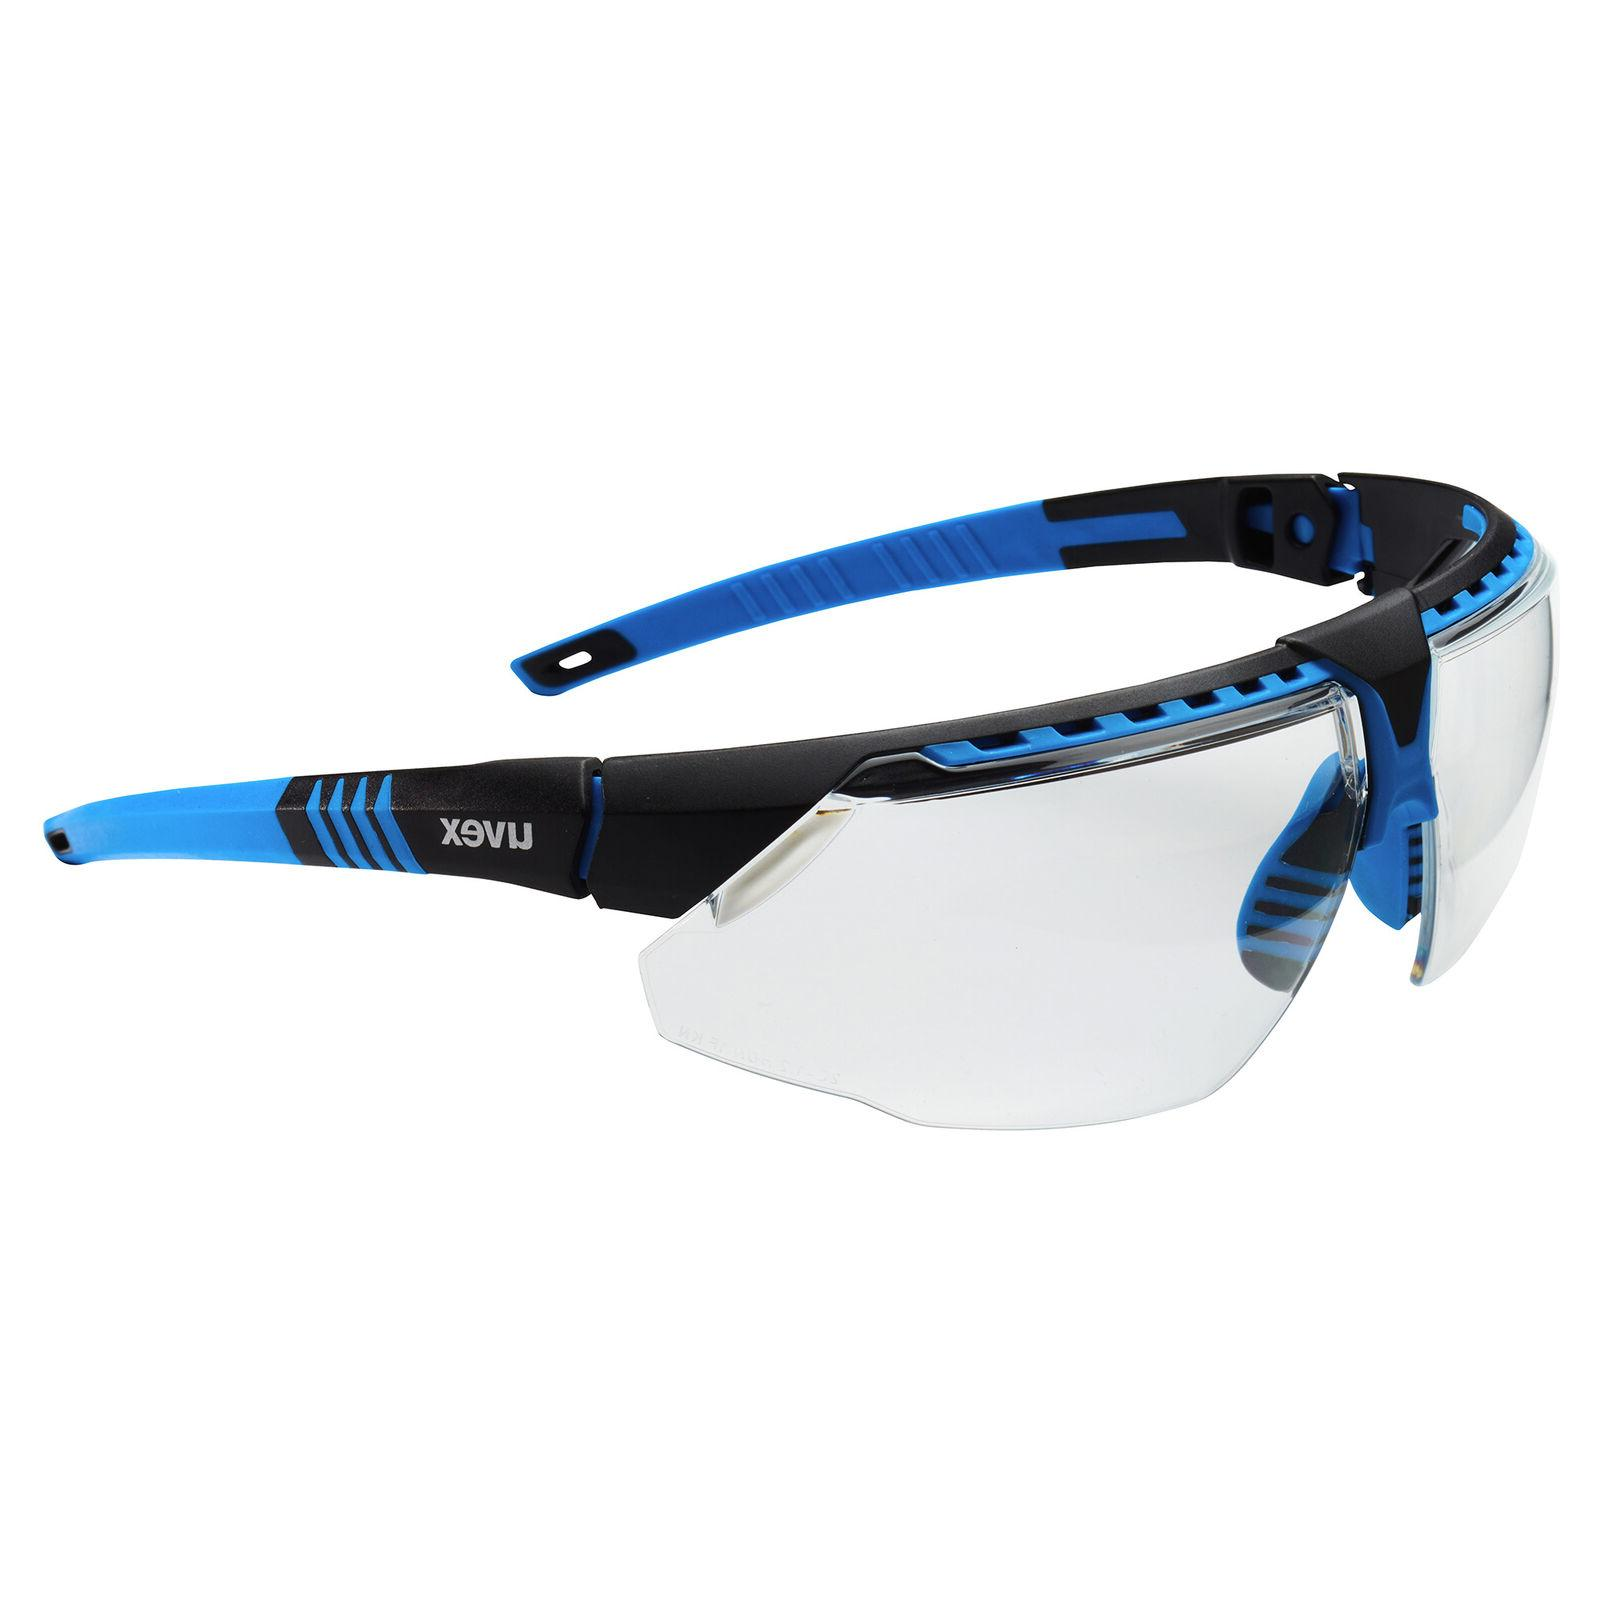 avatar safety glasses with clear lens blue